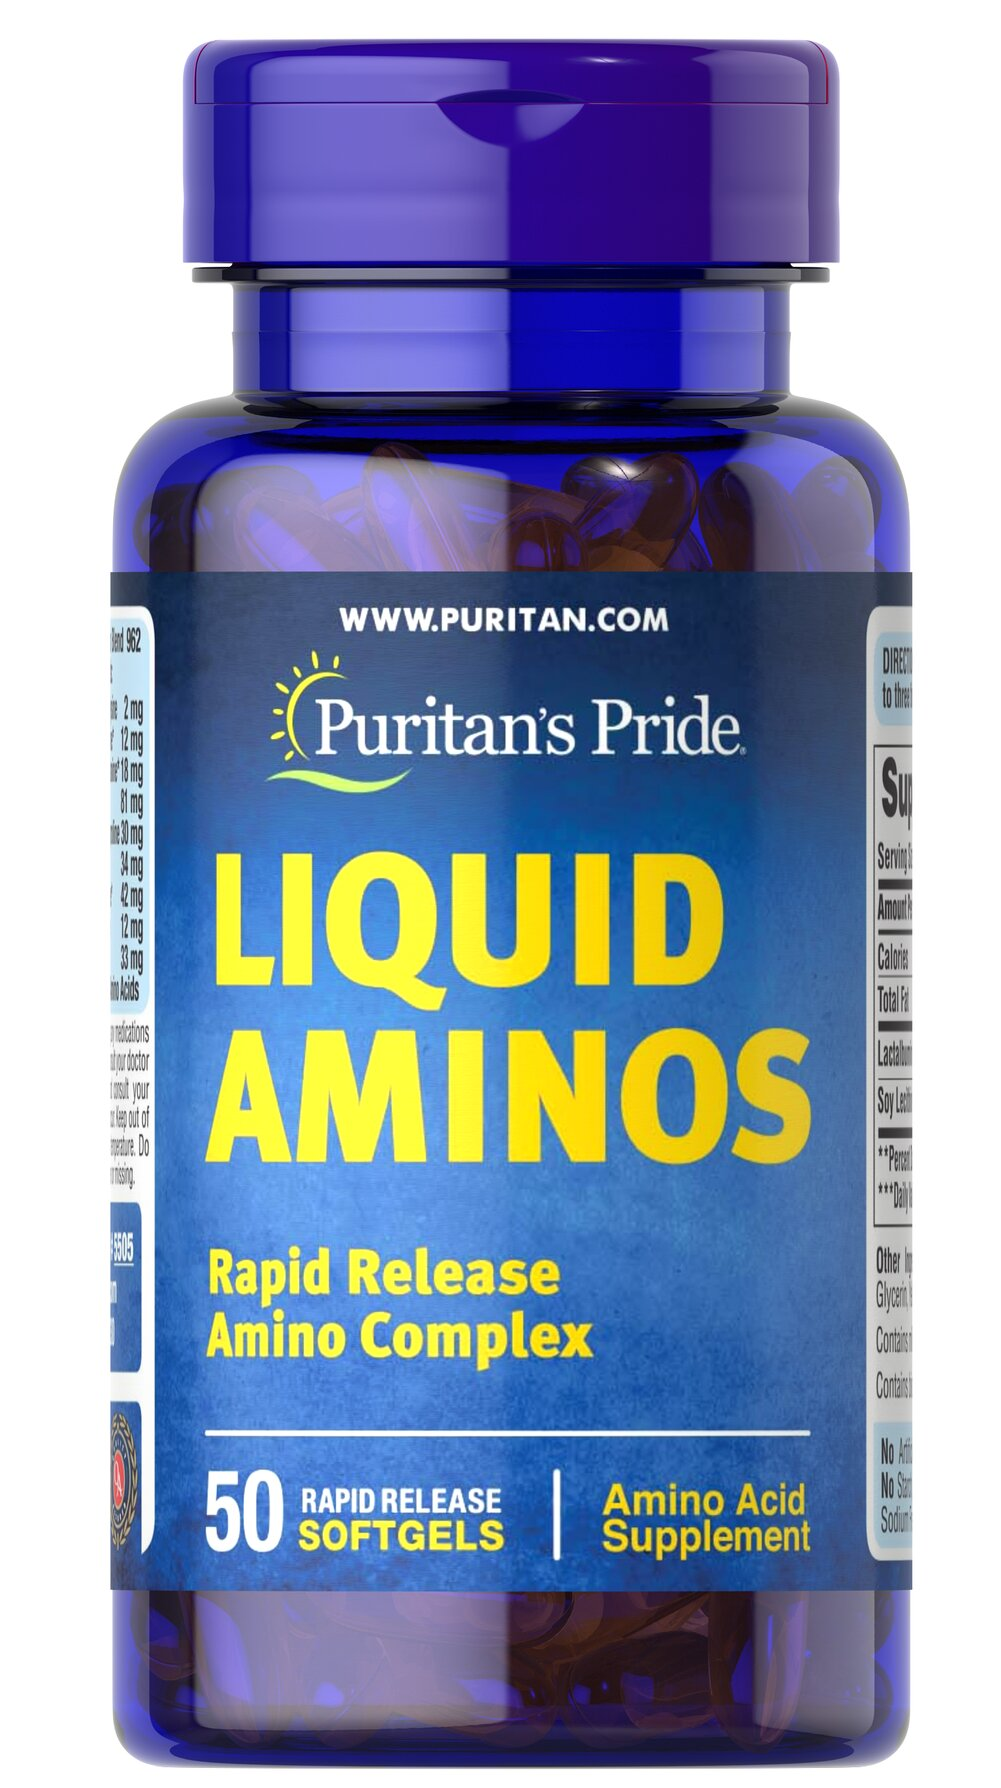 Liquid Aminos <p>Each Liquid Aminos softgel contains: L-Alanine (30 mg), L-Arginine (54 mg), L-Aspartic Acid (83 mg), L-Cysteine (10 mg), L-Glutamic Acid (145 mg), L-Glycine (33 mg),  L-Histidine (20 mg), L-Isoleucine (35 mg), L-Leucine (60 mg), L-Lysine (59 mg), L-Methionine (9 mg), L-Phenylalanine (41 mg), L-Proline (38 mg), L-Serine (39 mg), L-Threonine (32 mg), L-Tryptophan (7 mg), L-Tyrosine (22 mg), and L-Valine (33 mg)</p> 50 Softgels  $10.99